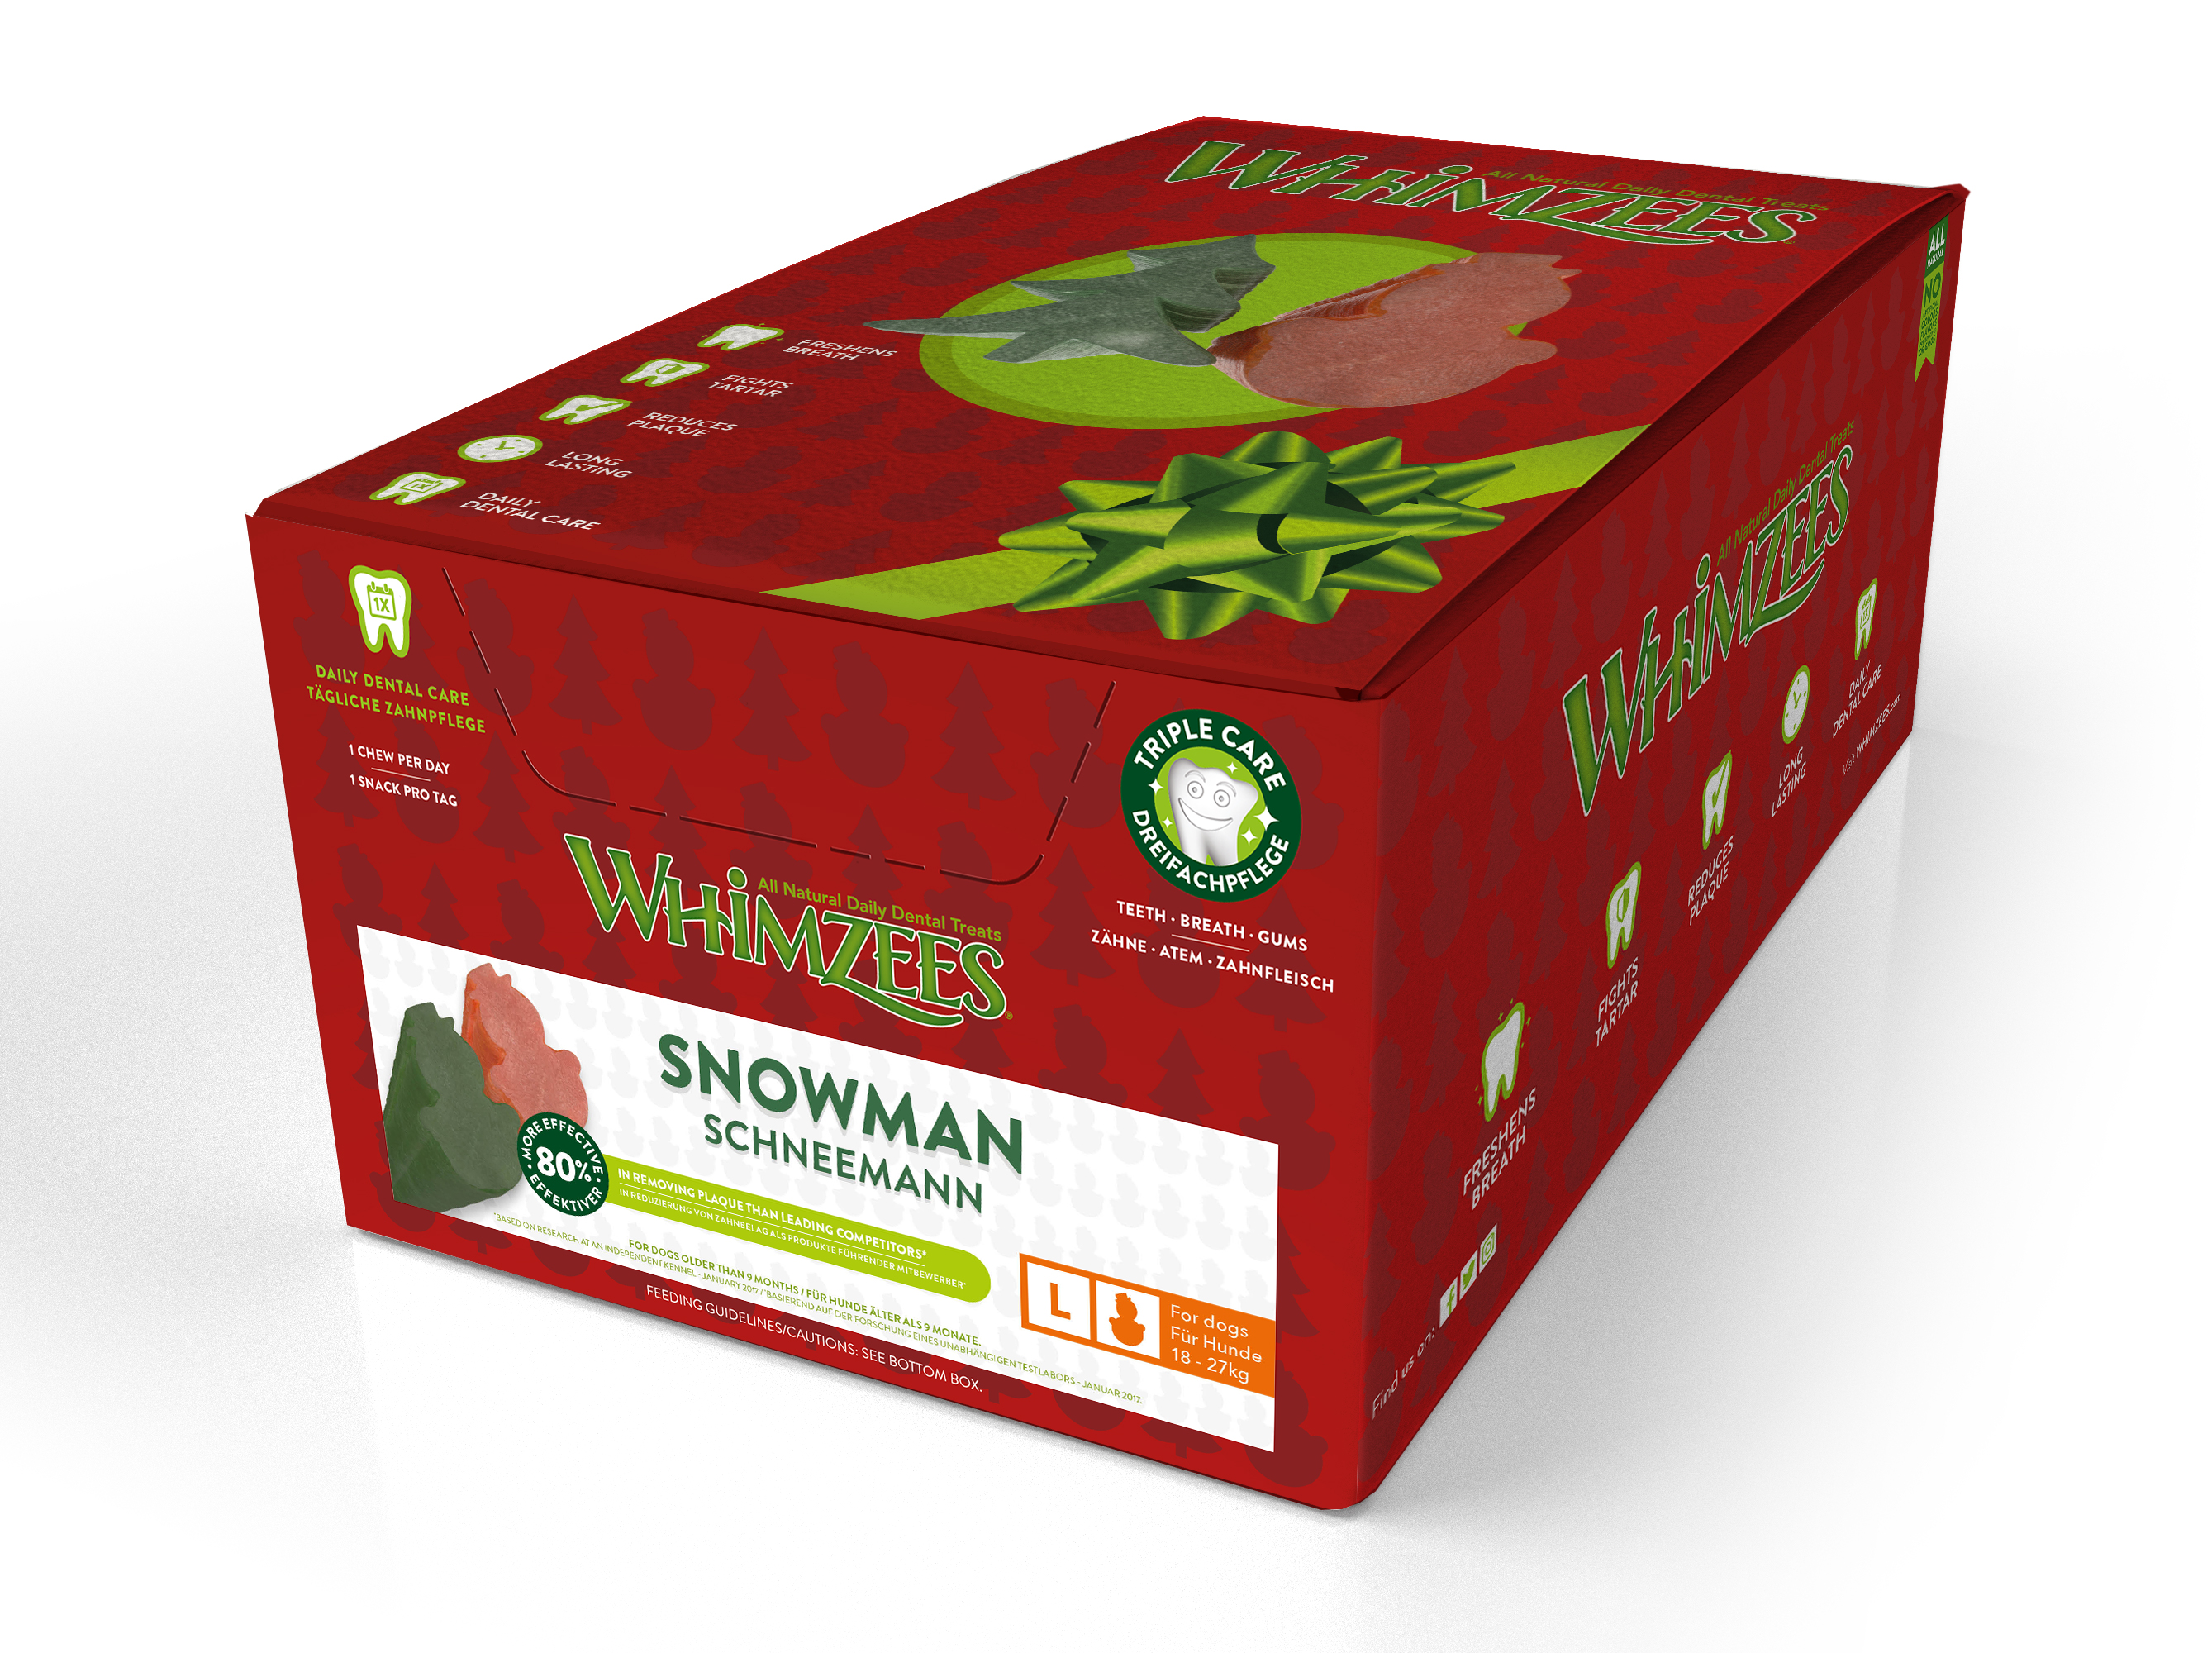 SPAR 20% - WHIMZEES Christmas Box, Snømann, L, display m/50 stk. (WHZ969)